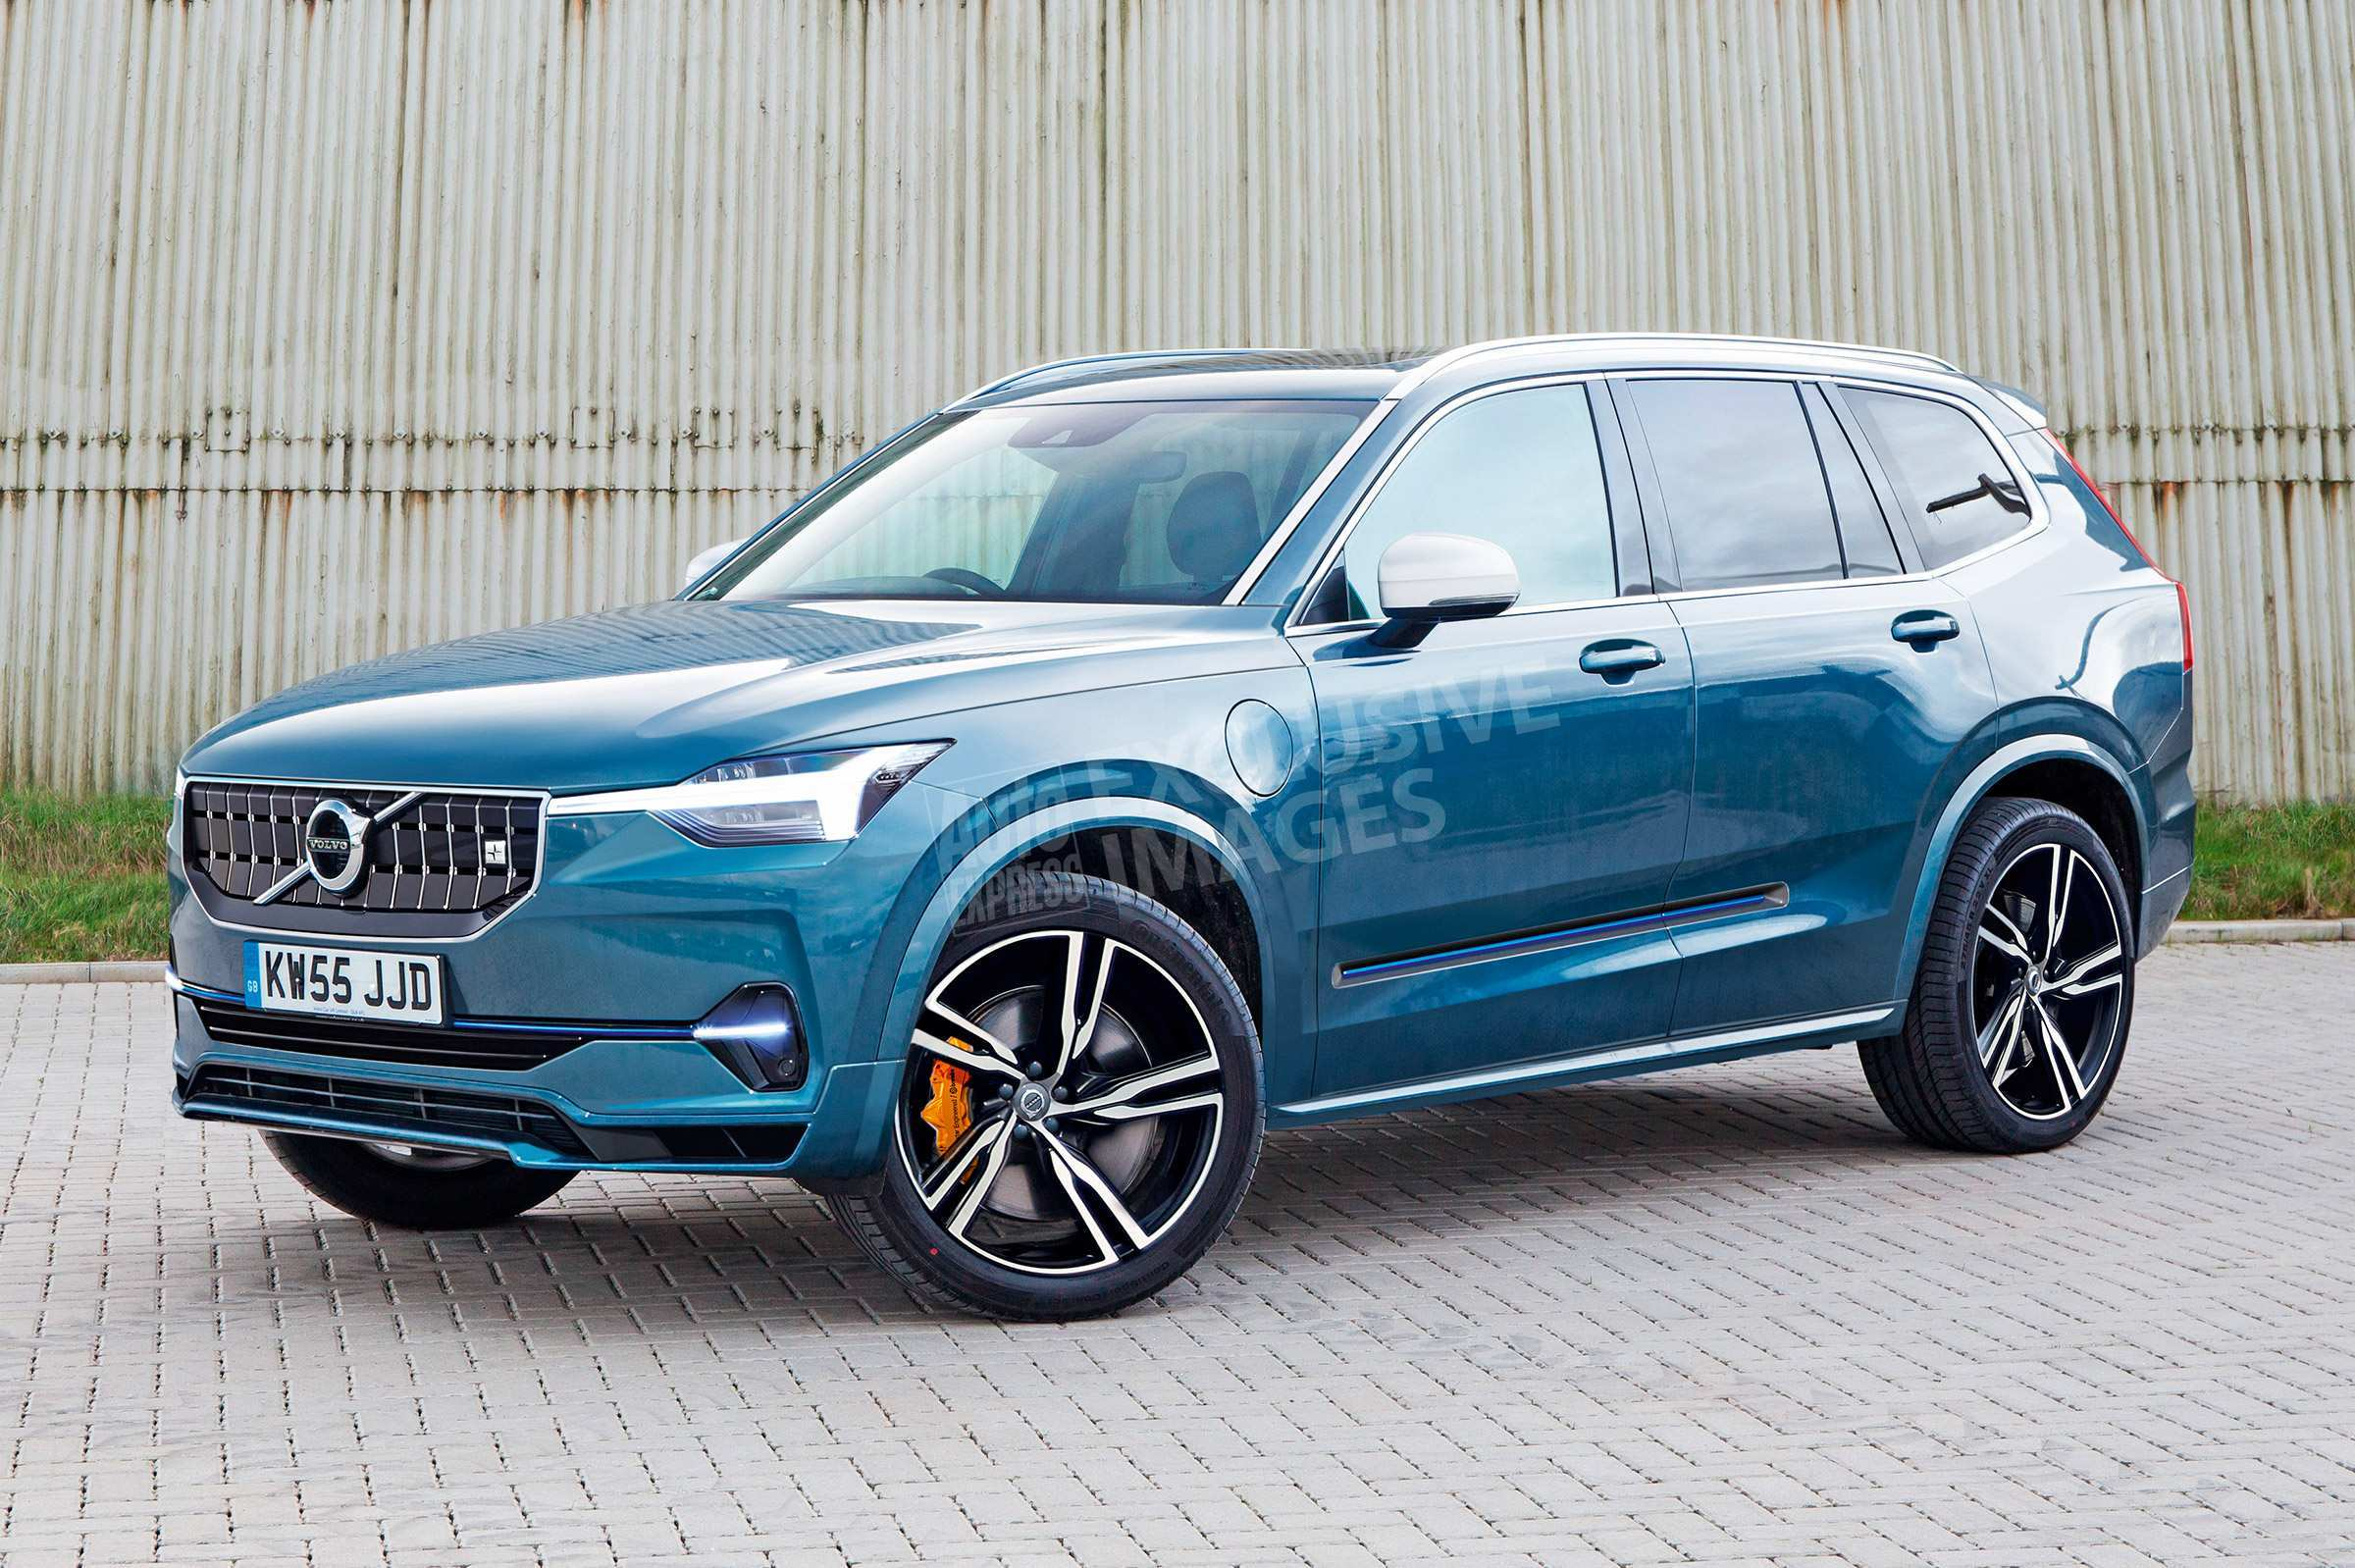 53 All New Volvo New Xc90 2020 Redesign And Concept